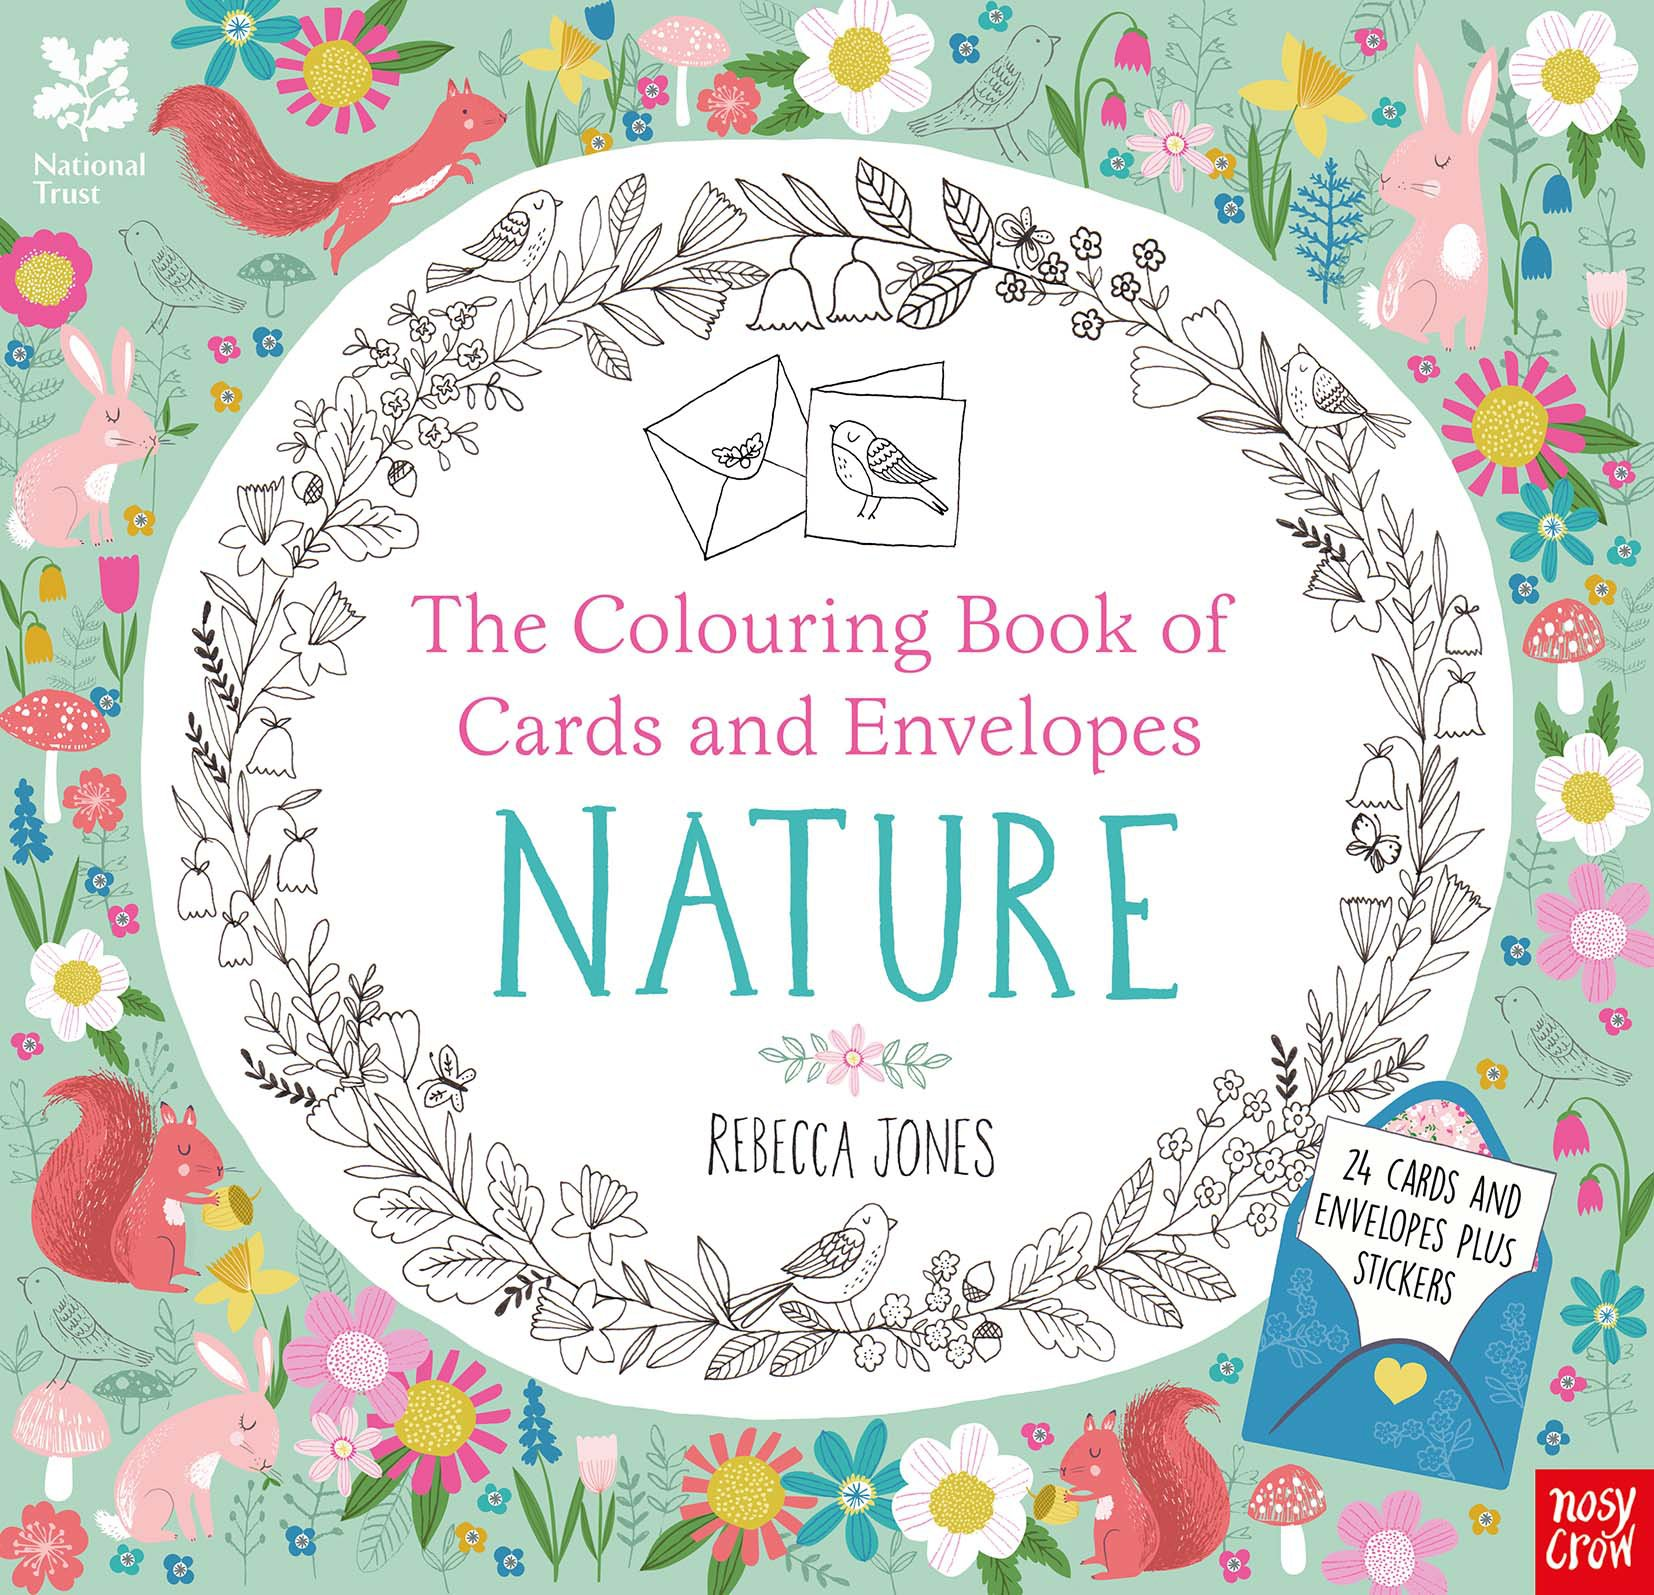 National trust the colouring book of cards and envelopes nature national trust the colouring book of cards and envelopes nature colouring books of cards and envelopes amazon rebecca jones 9780857637253 m4hsunfo